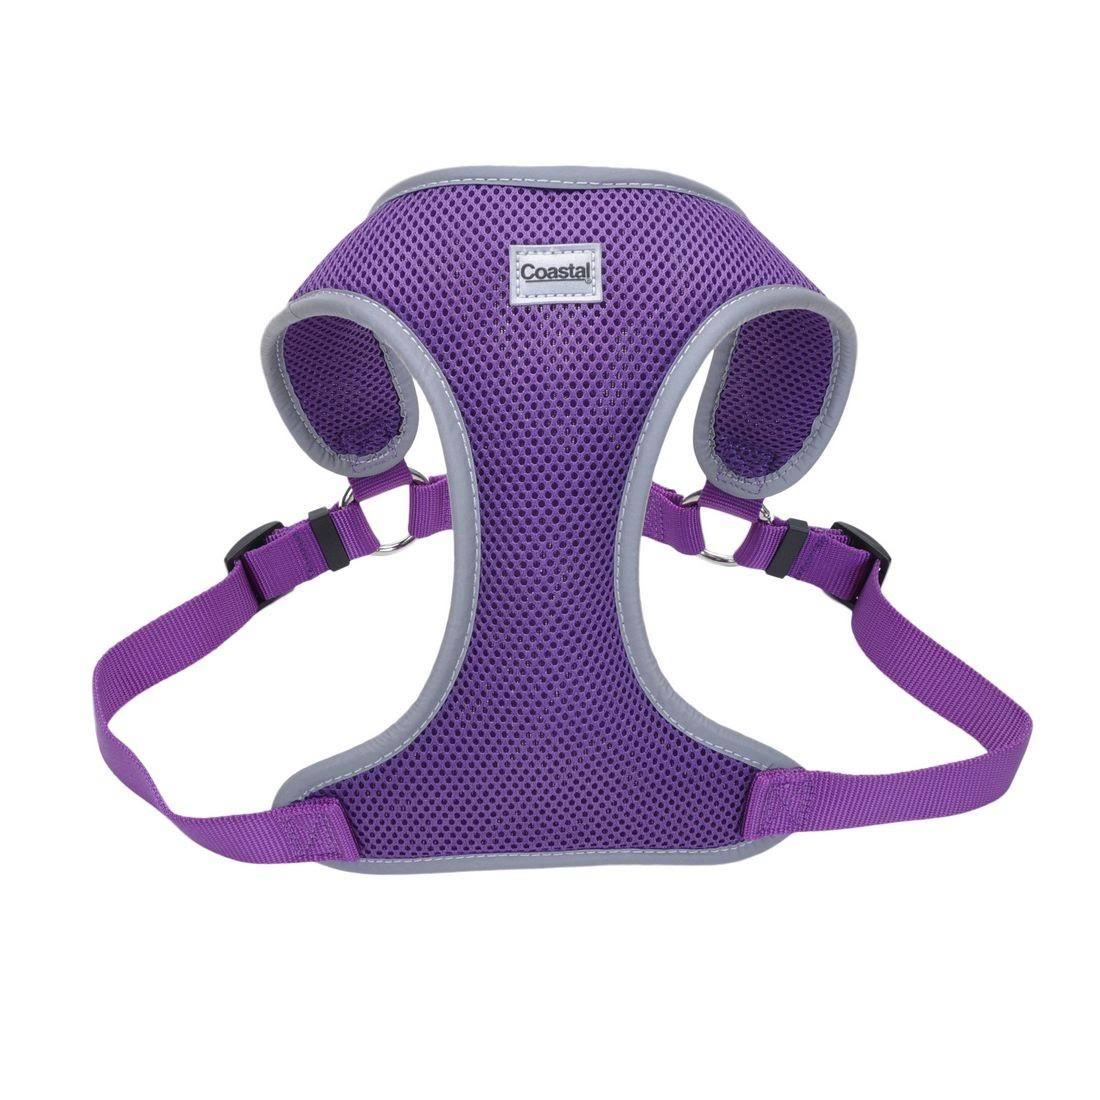 Coastal Pet Mesh Reflective Harness - Purple, Medium